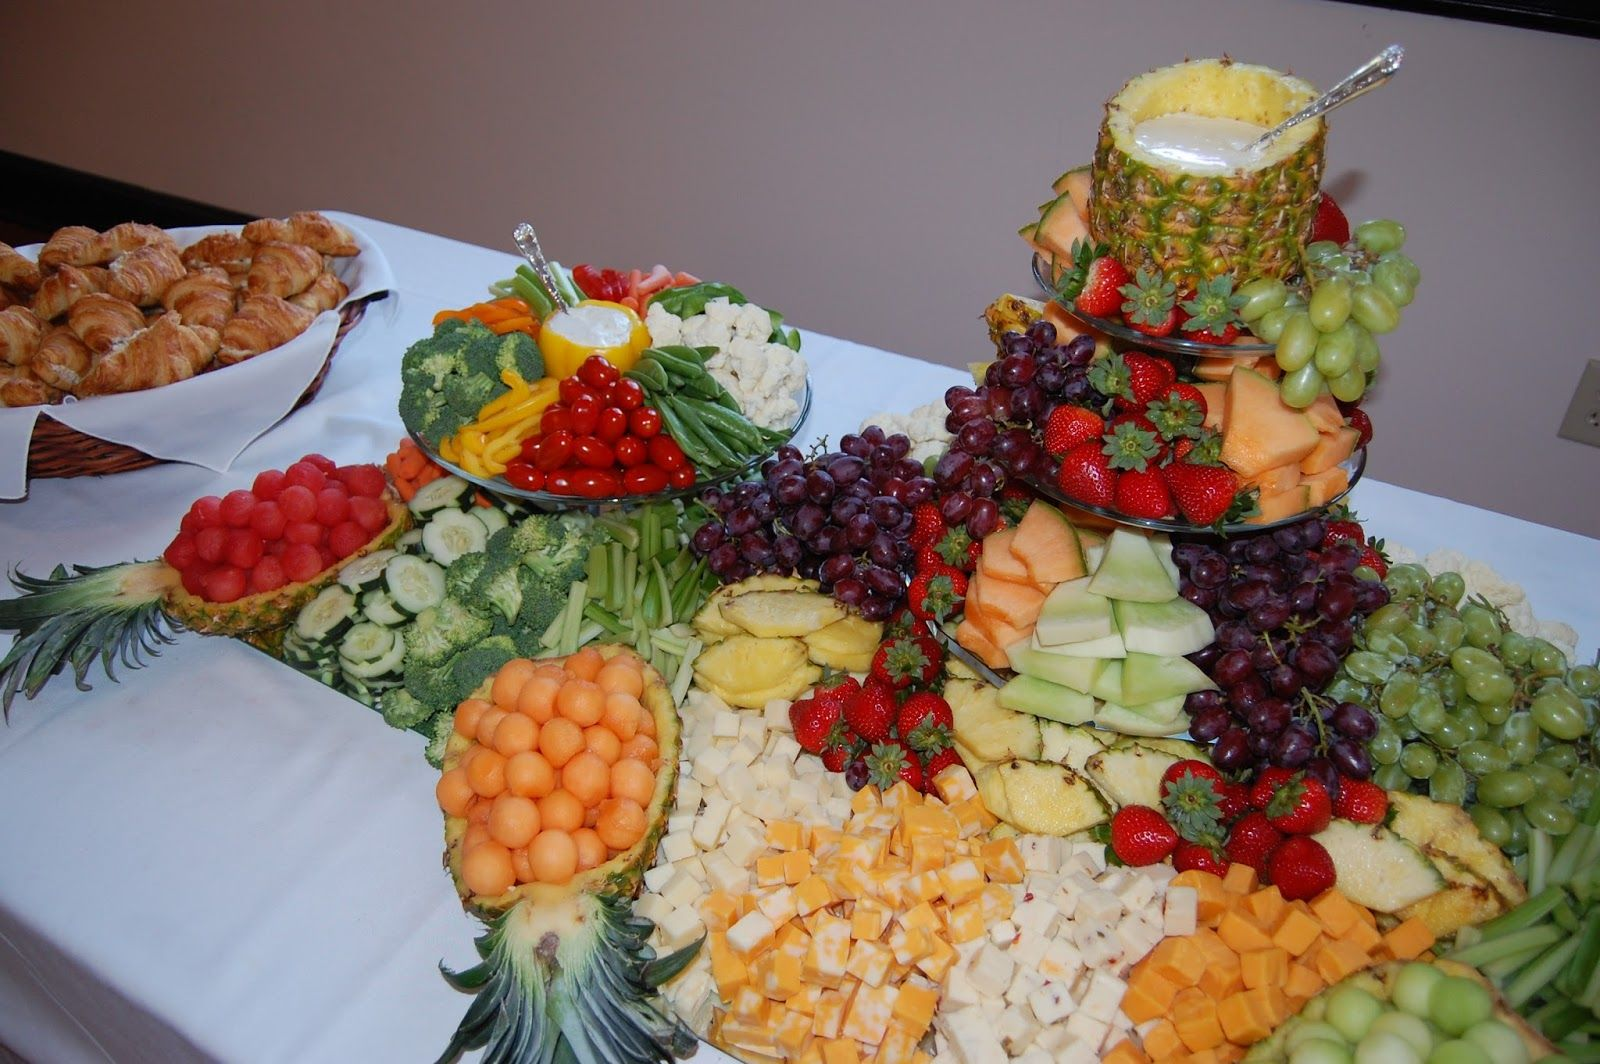 Cheese And Fruit Platter Ideas For Weddings Did The Fruit Veggie And Cheese Platter For Vegetable And Fruit Tray Vegetable Tray Christmas Salad Recipes